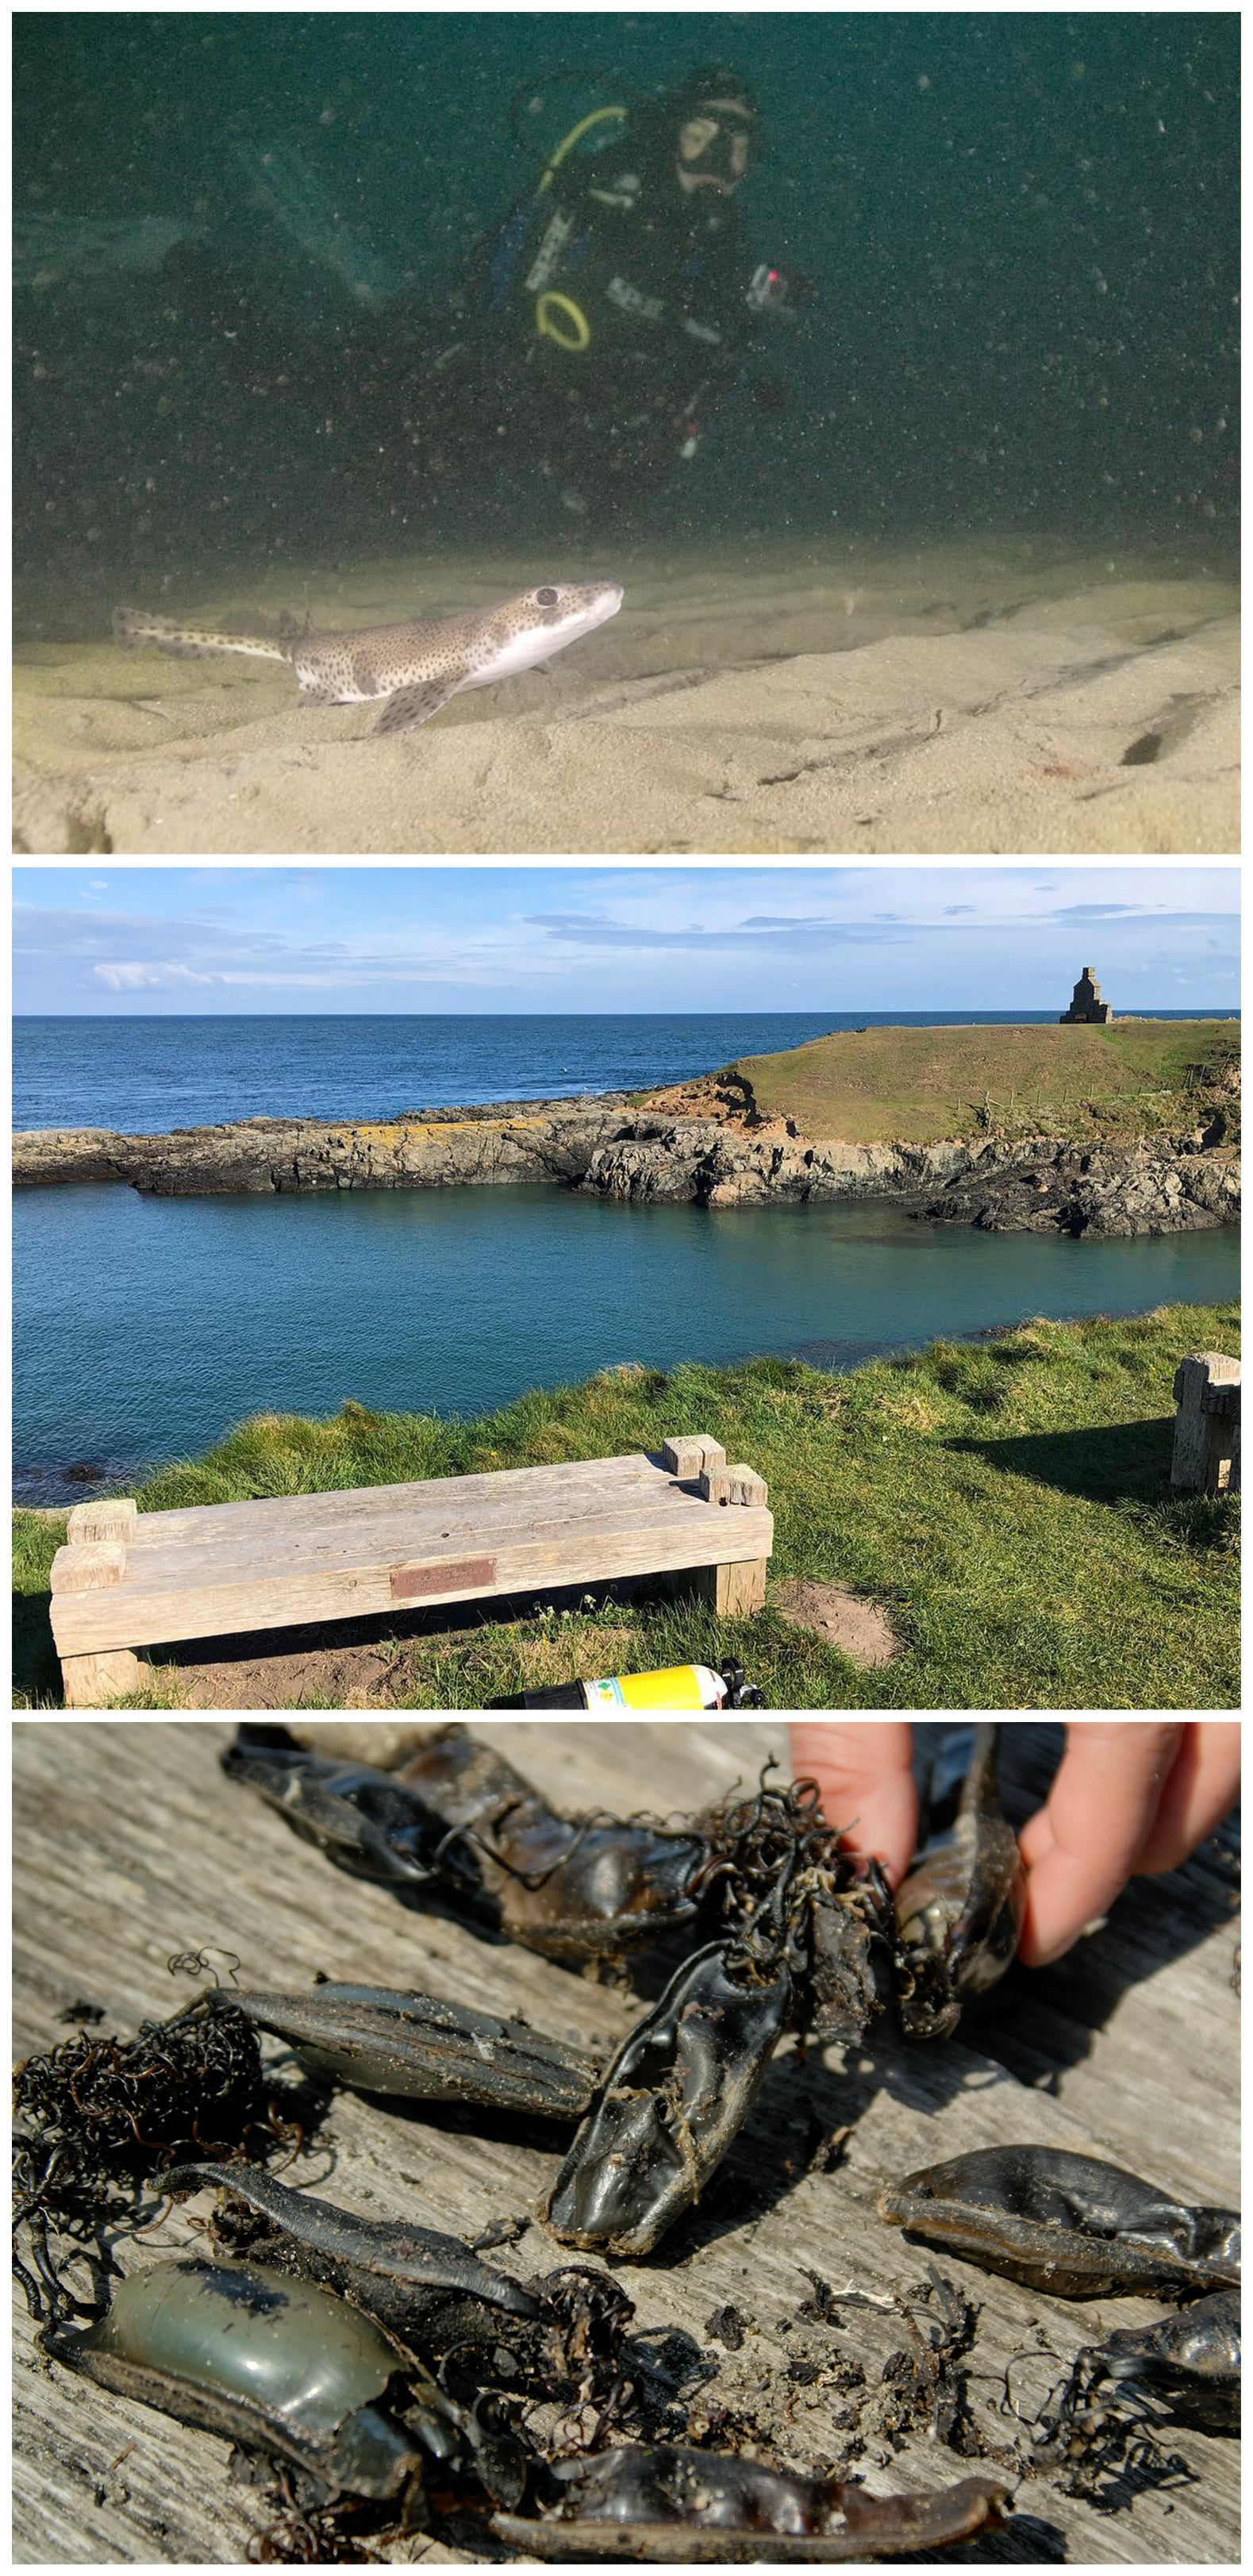 Top: Diver with catfish, Middle: Bench on coast at Porth Ysgaden, Bottom: Mermaid's Purses